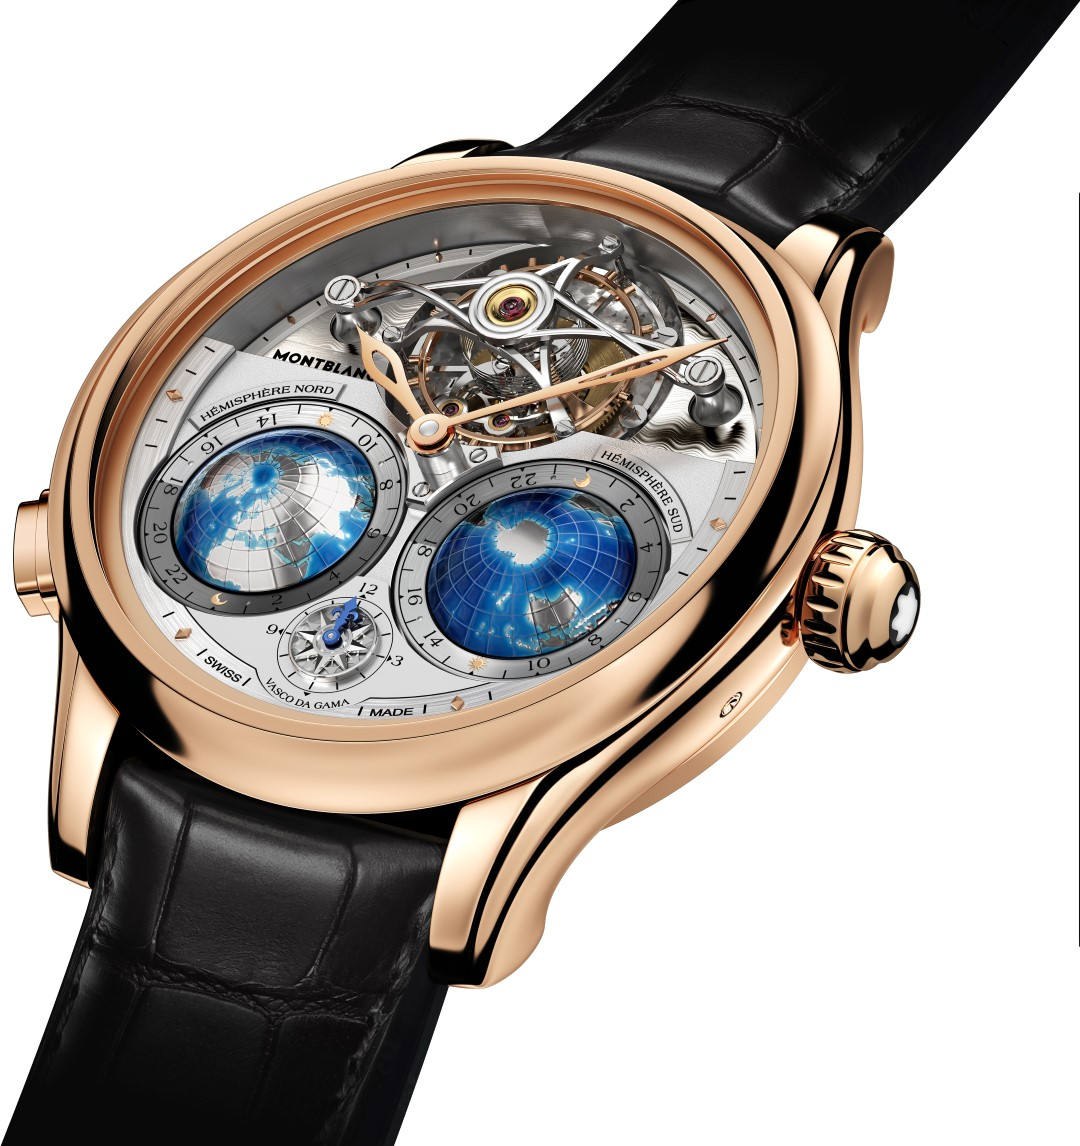 Montblanc Collection Villeret Tourbillon Cylindrique Geosphères Vasco da Gama - perfil